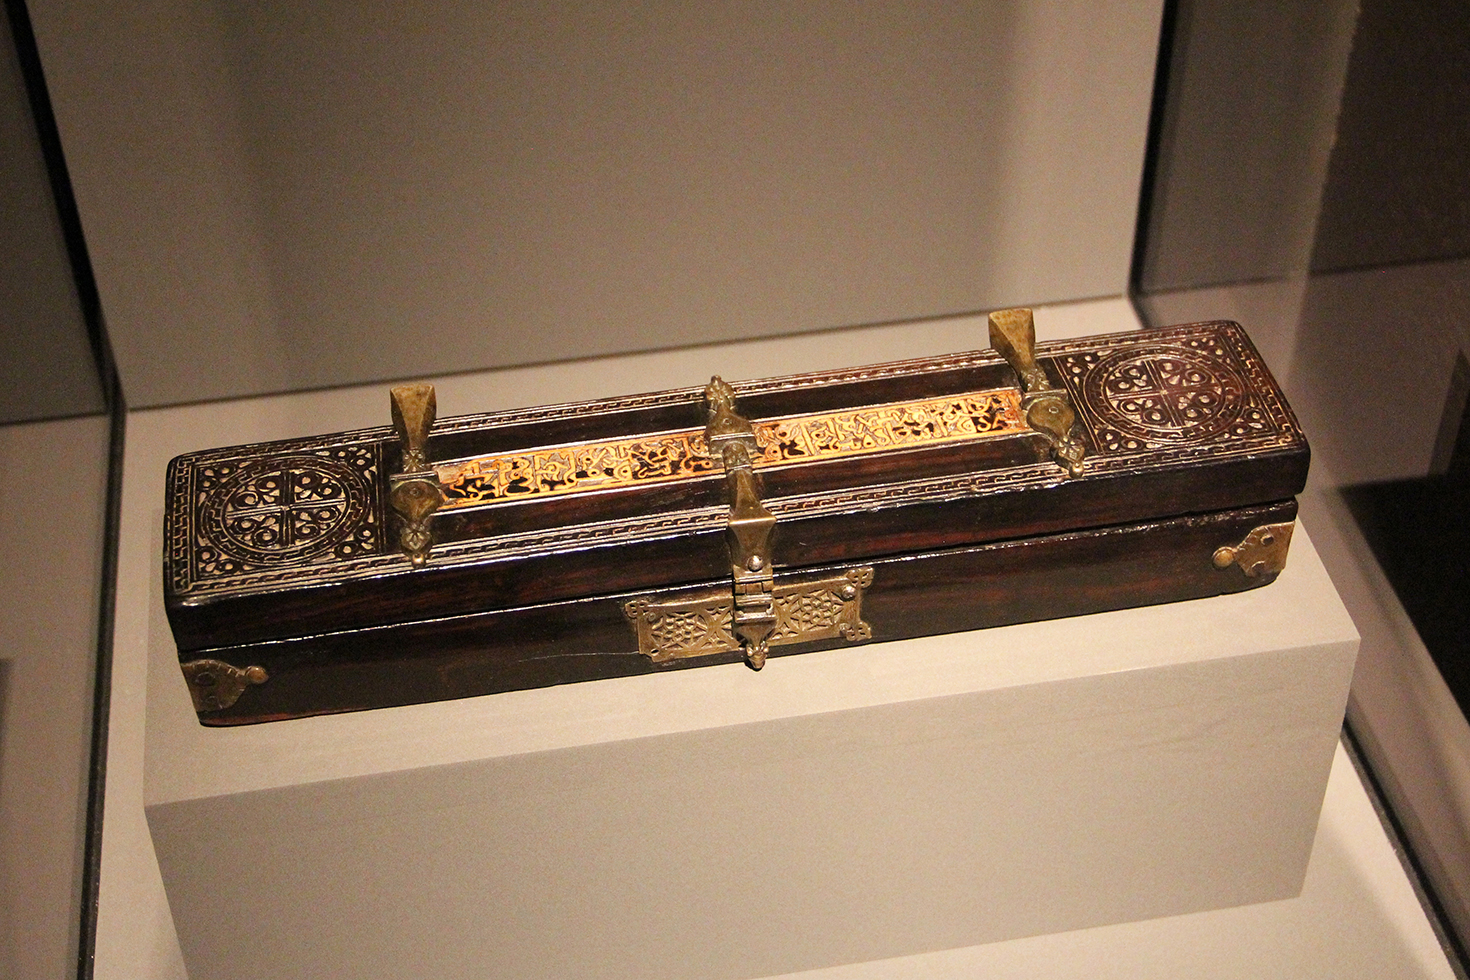 12th Century Egyptian or Sicilian Pen Box, Museum of Islamic Art | Doha, Qatar